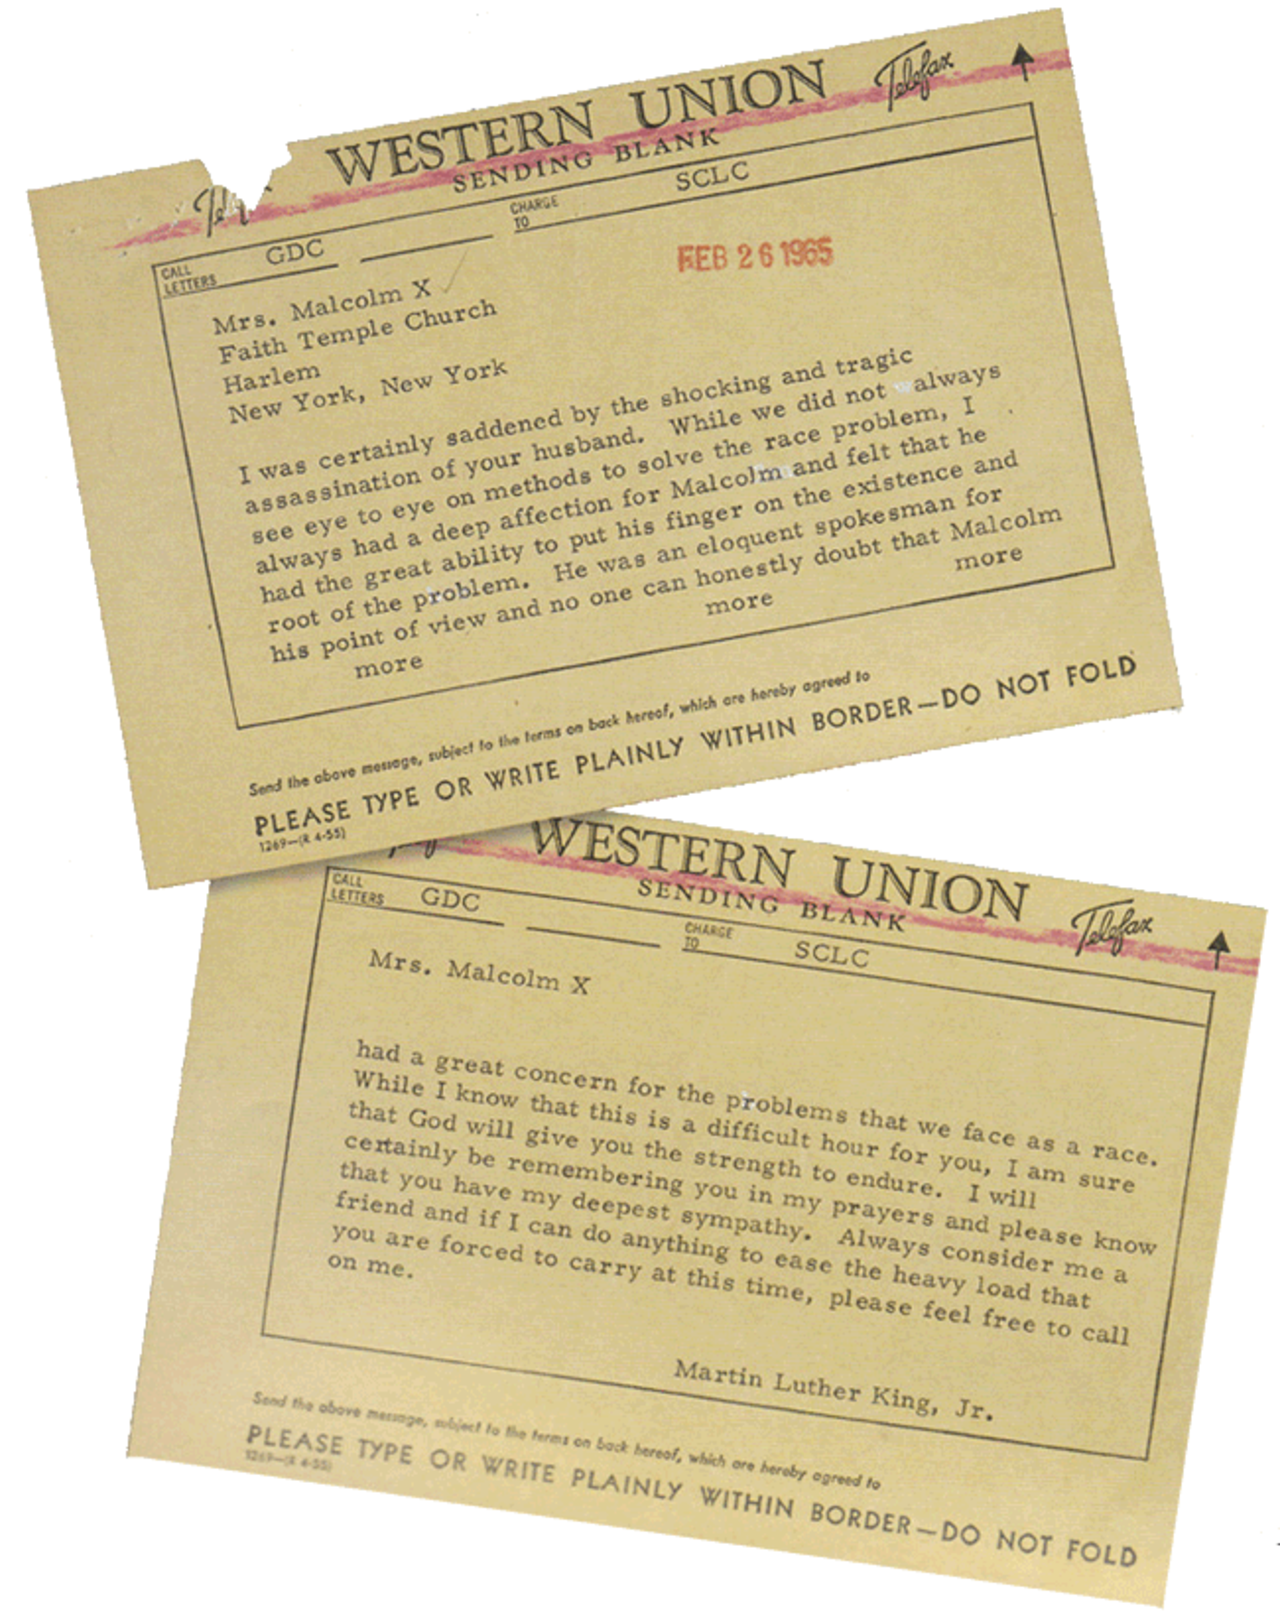 Telegram from Martin Luther King, Jr., to Betty Shabazz, the widow of Malcolm X. (Courtesy of the King Papers Project at Stanford University)